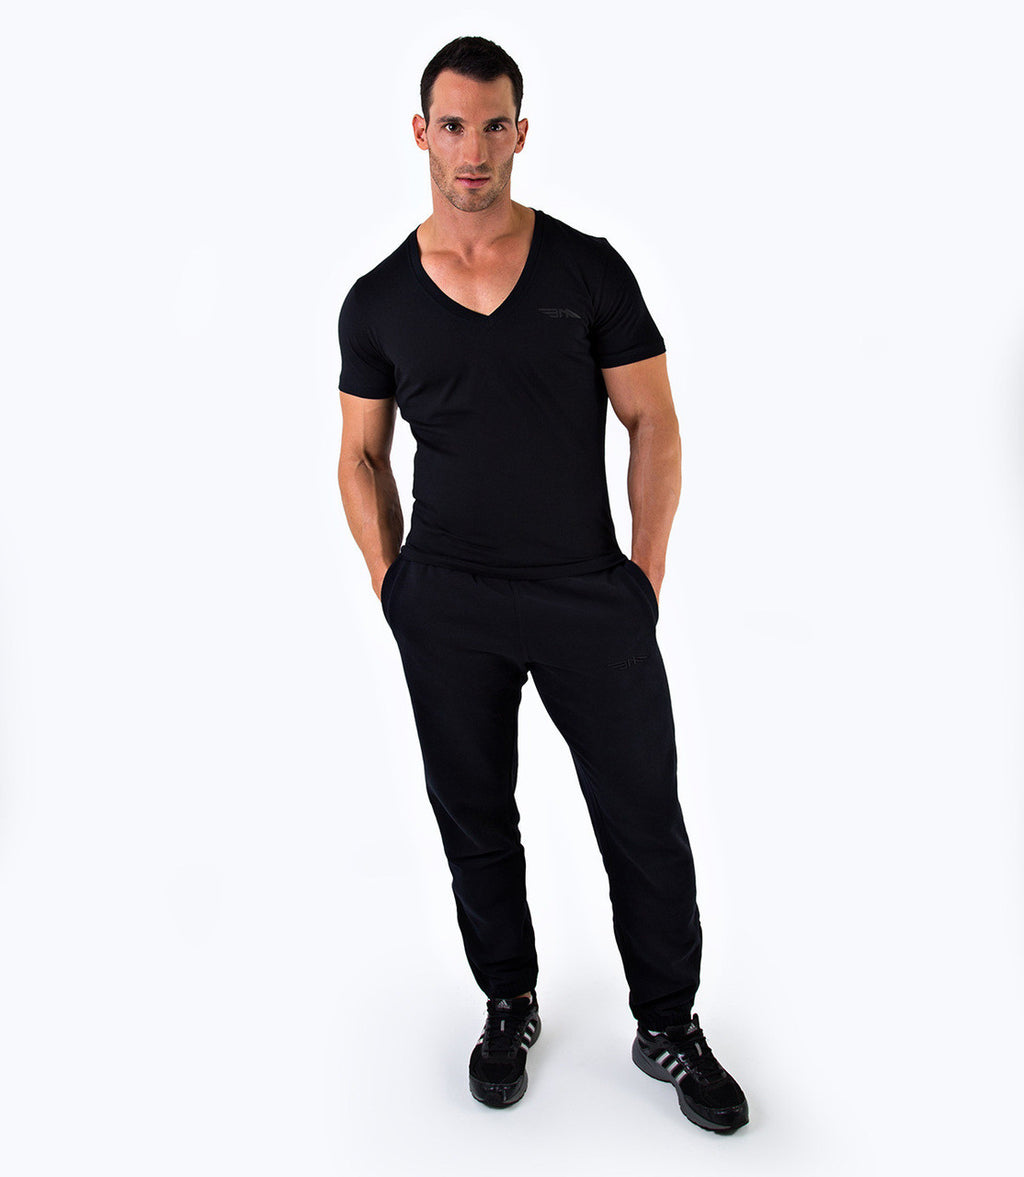 MENS PREMIUM V-NECK T-SHIRT - BLACK